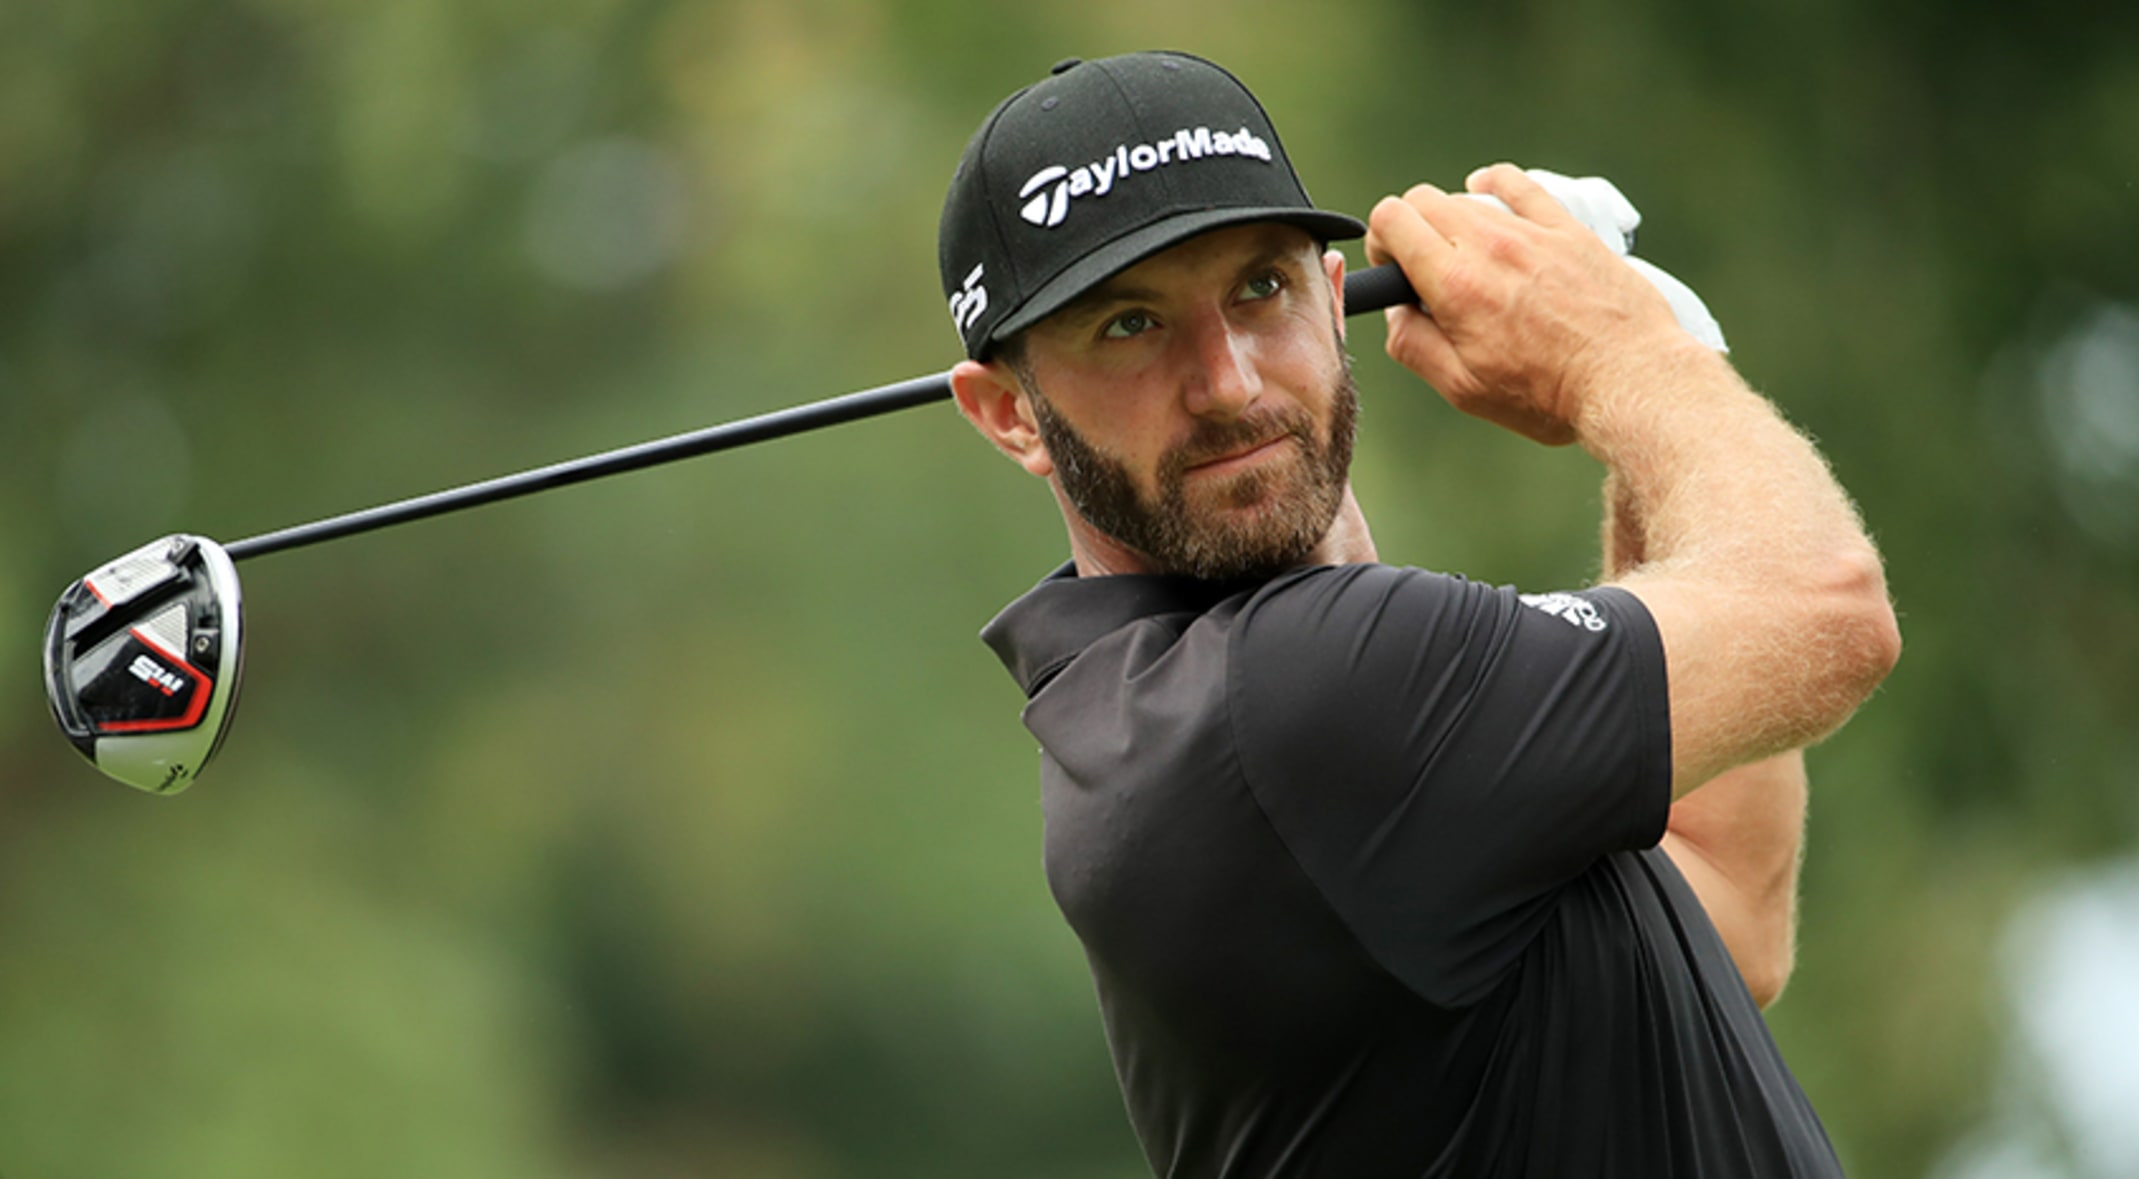 Dustin Johnson has knee surgery; full recovery expected